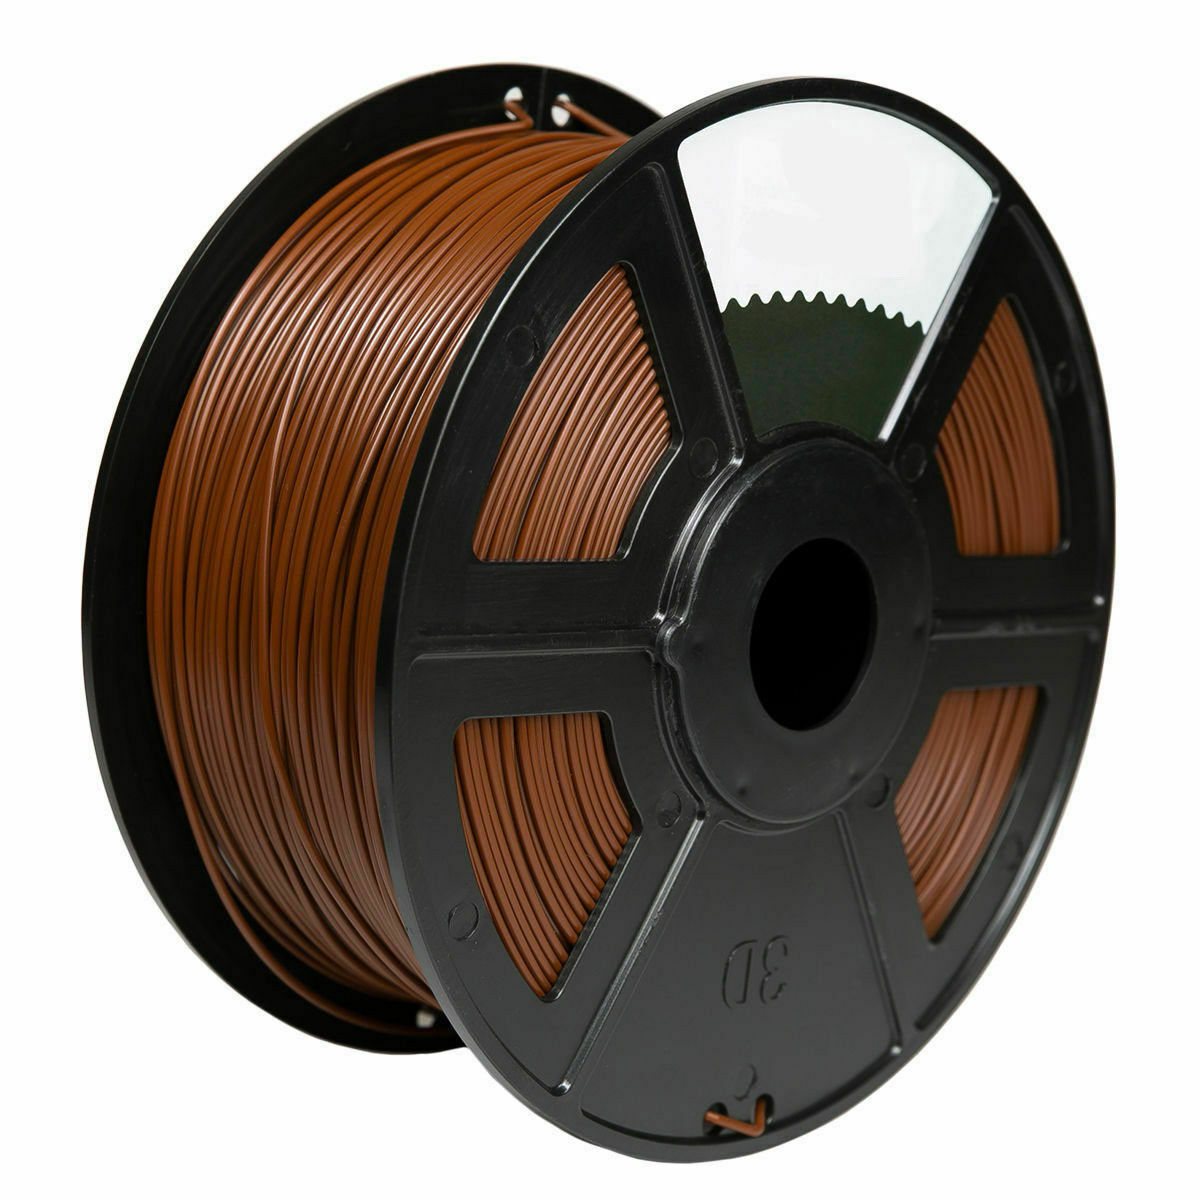 ABS 3D Printer Filament 1.75mm Accuracy +/- 0.02 mm 1kg Spool ABS Brown